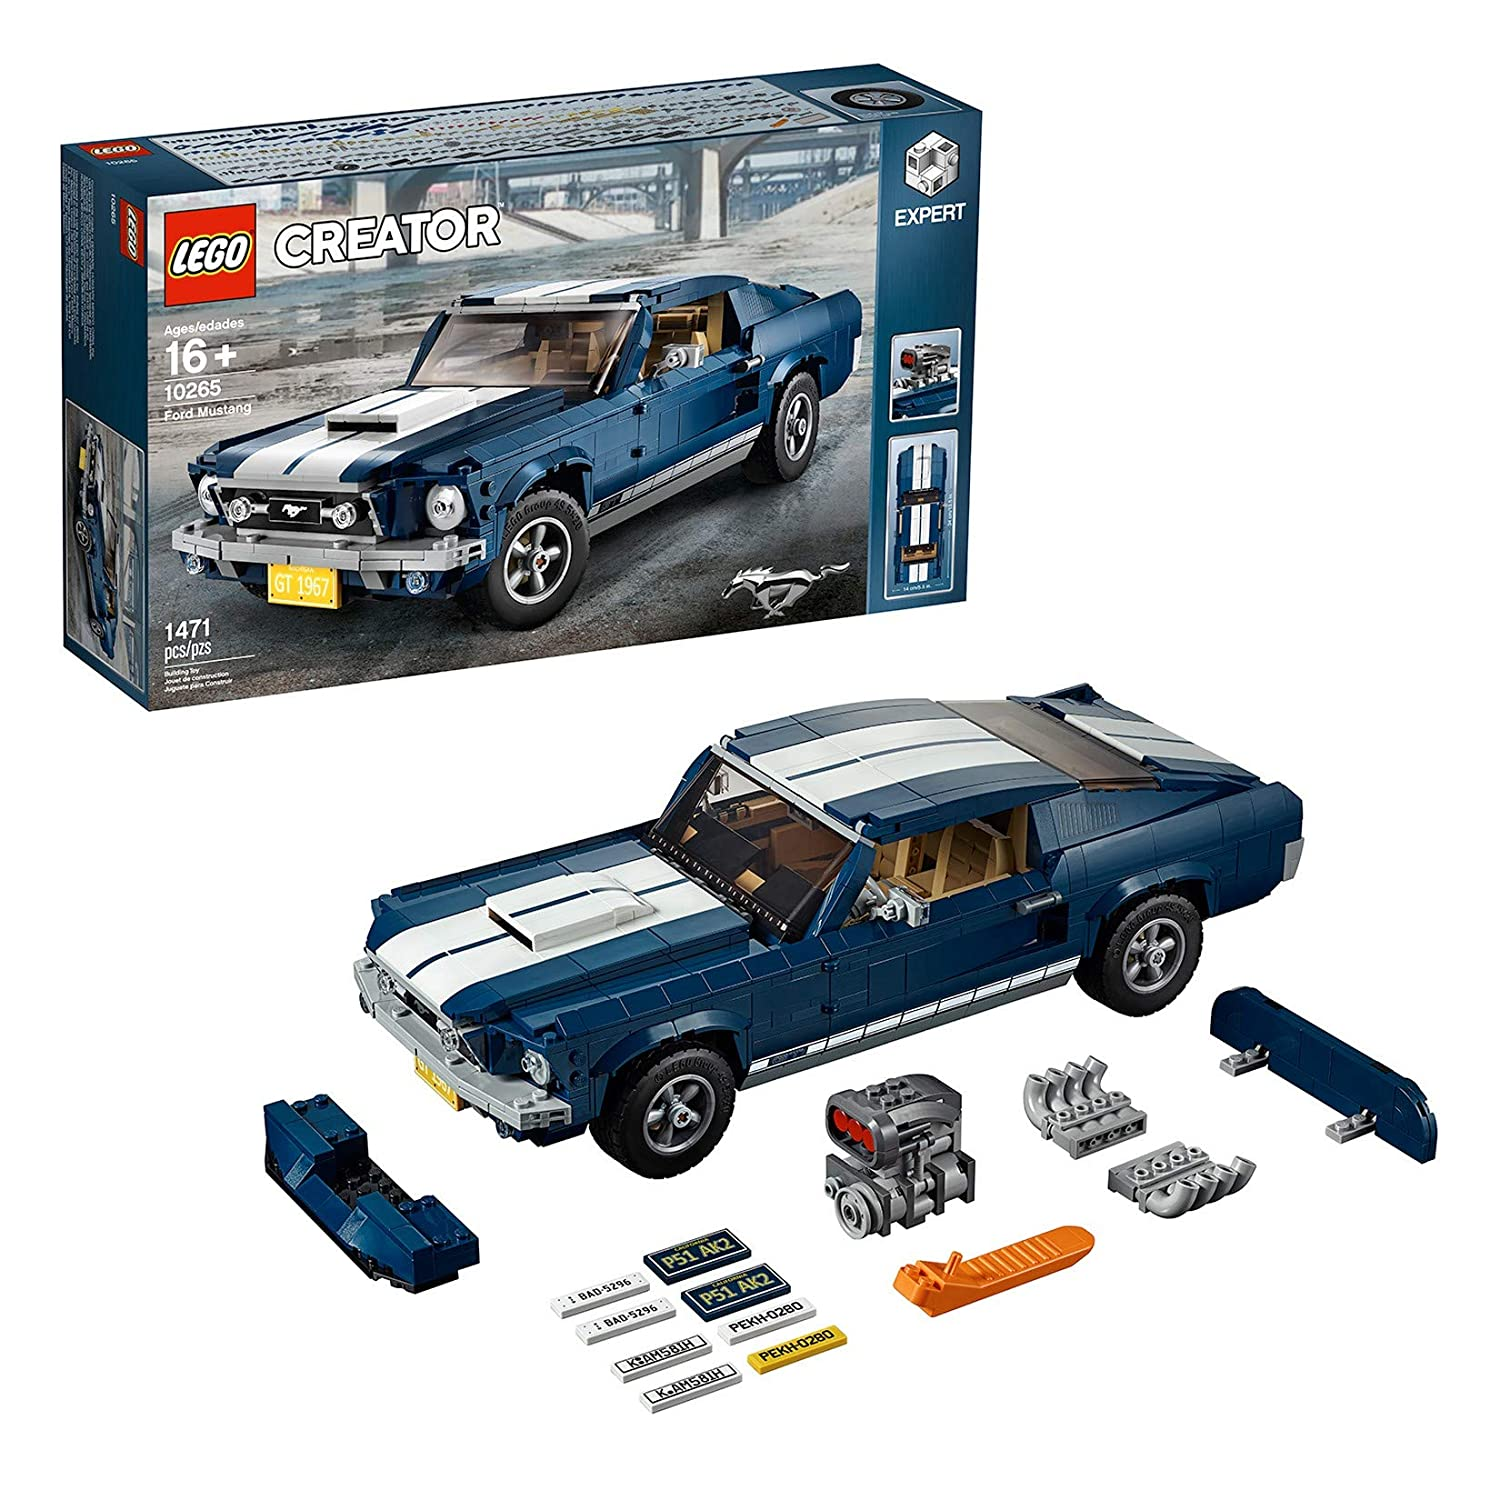 Lego 10265 creator expert ford mustang exclusive collectors car model